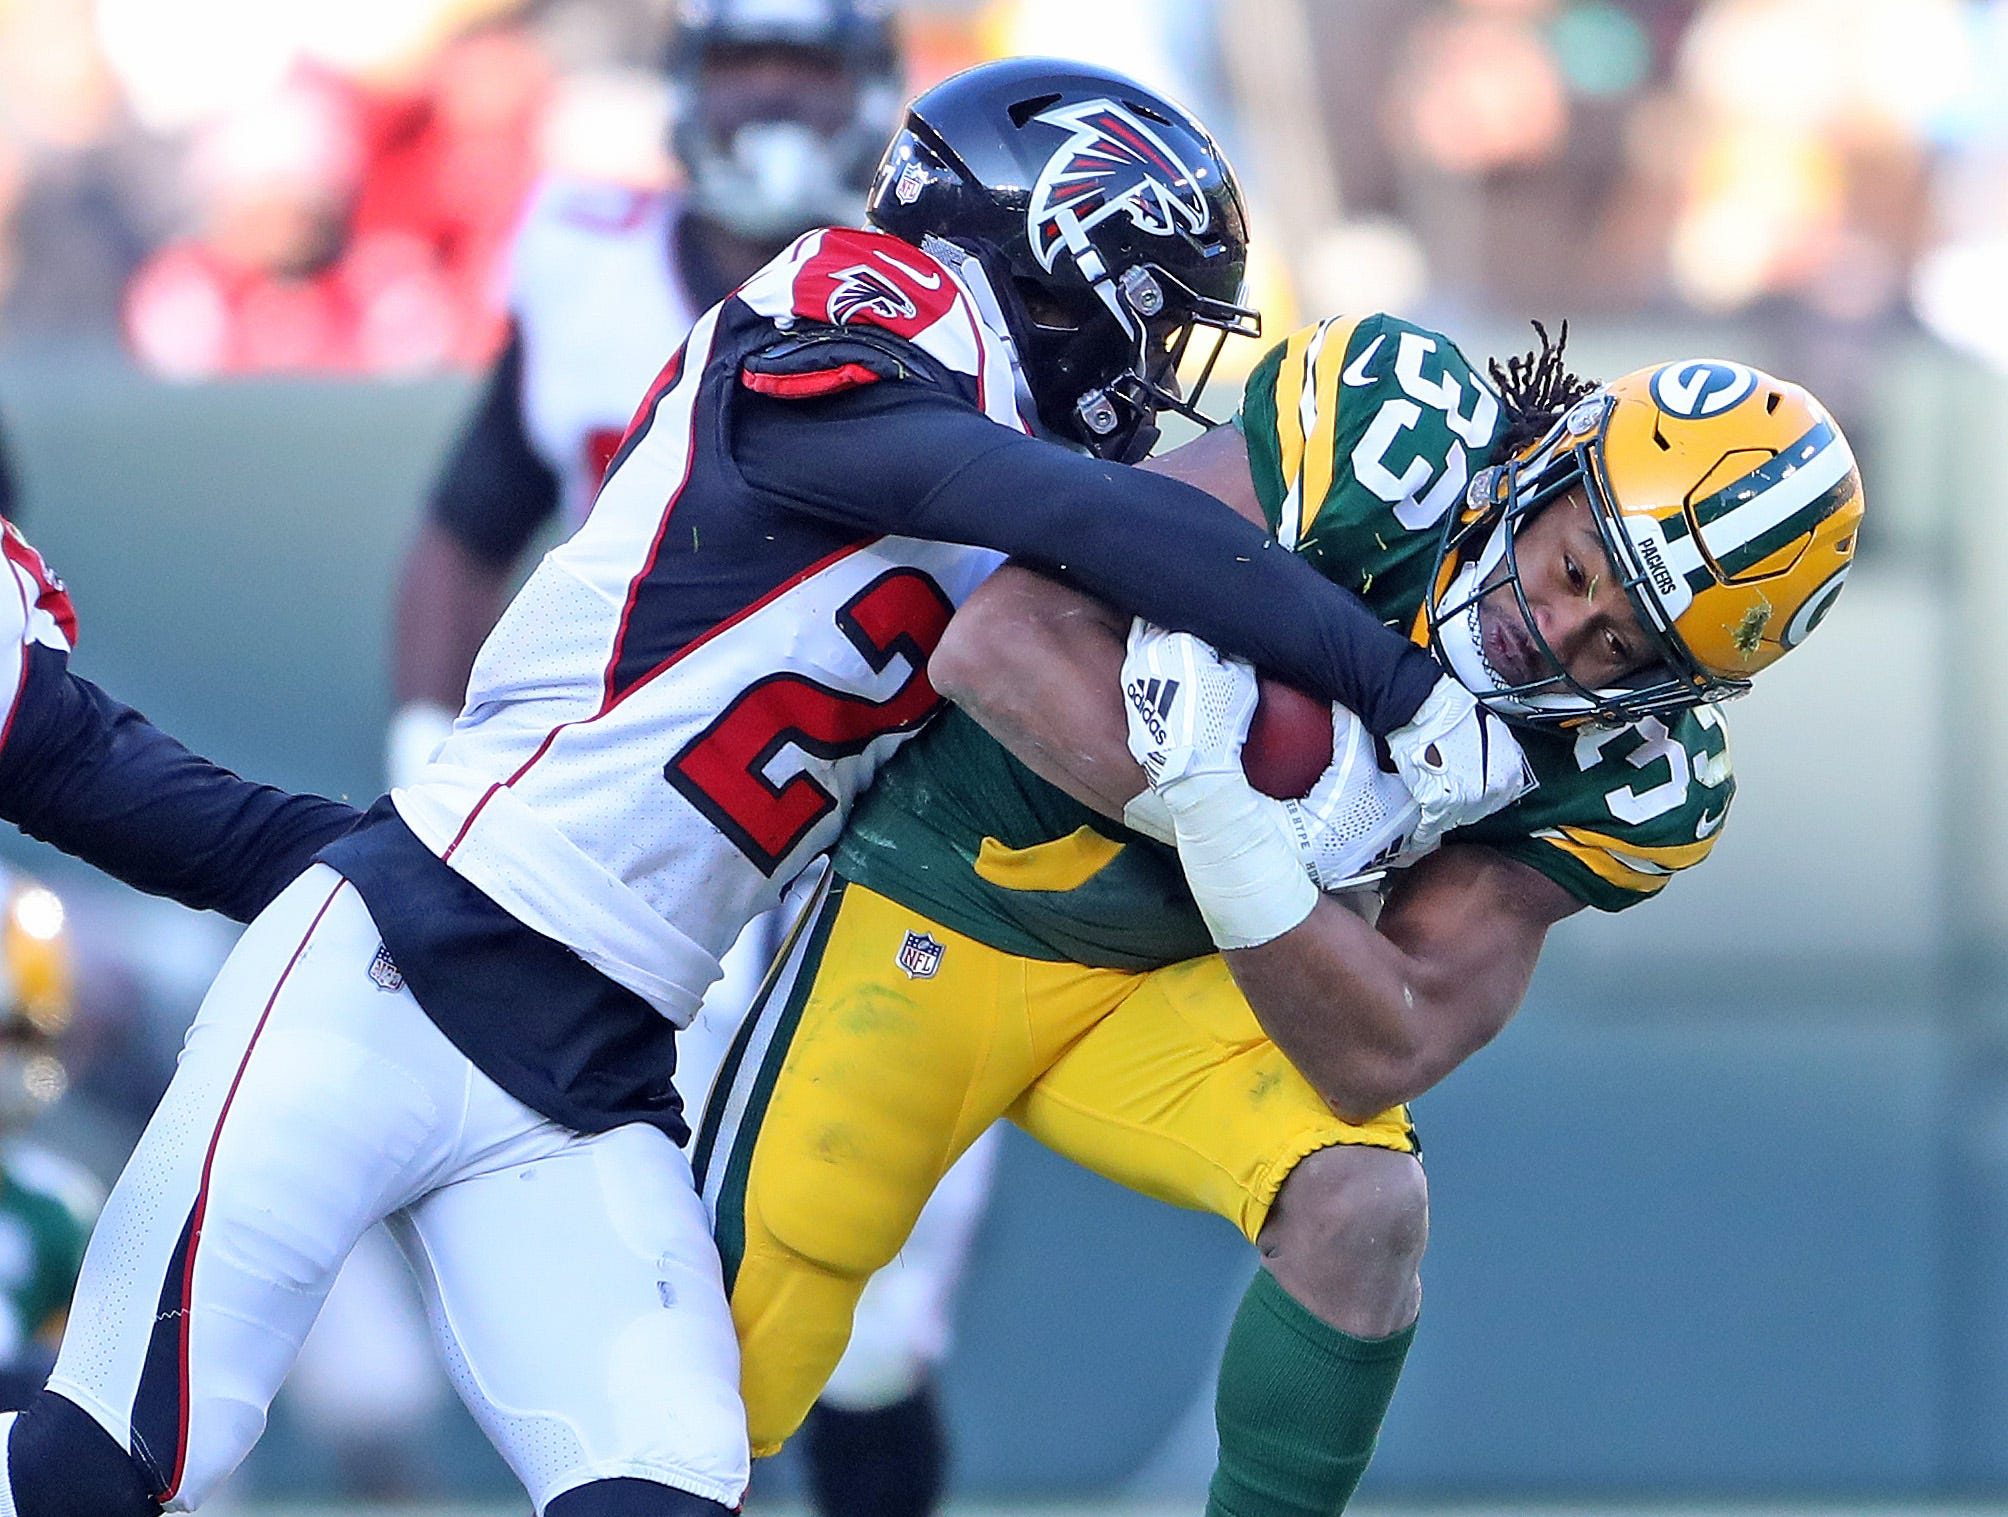 Green Bay Packers running back Aaron Jones (33) takes a hit against the Atlanta Falcons Sunday, December 9, 2018 at Lambeau Field in Green Bay, Wis. Jim Matthews/USA TODAY NETWORK-Wis